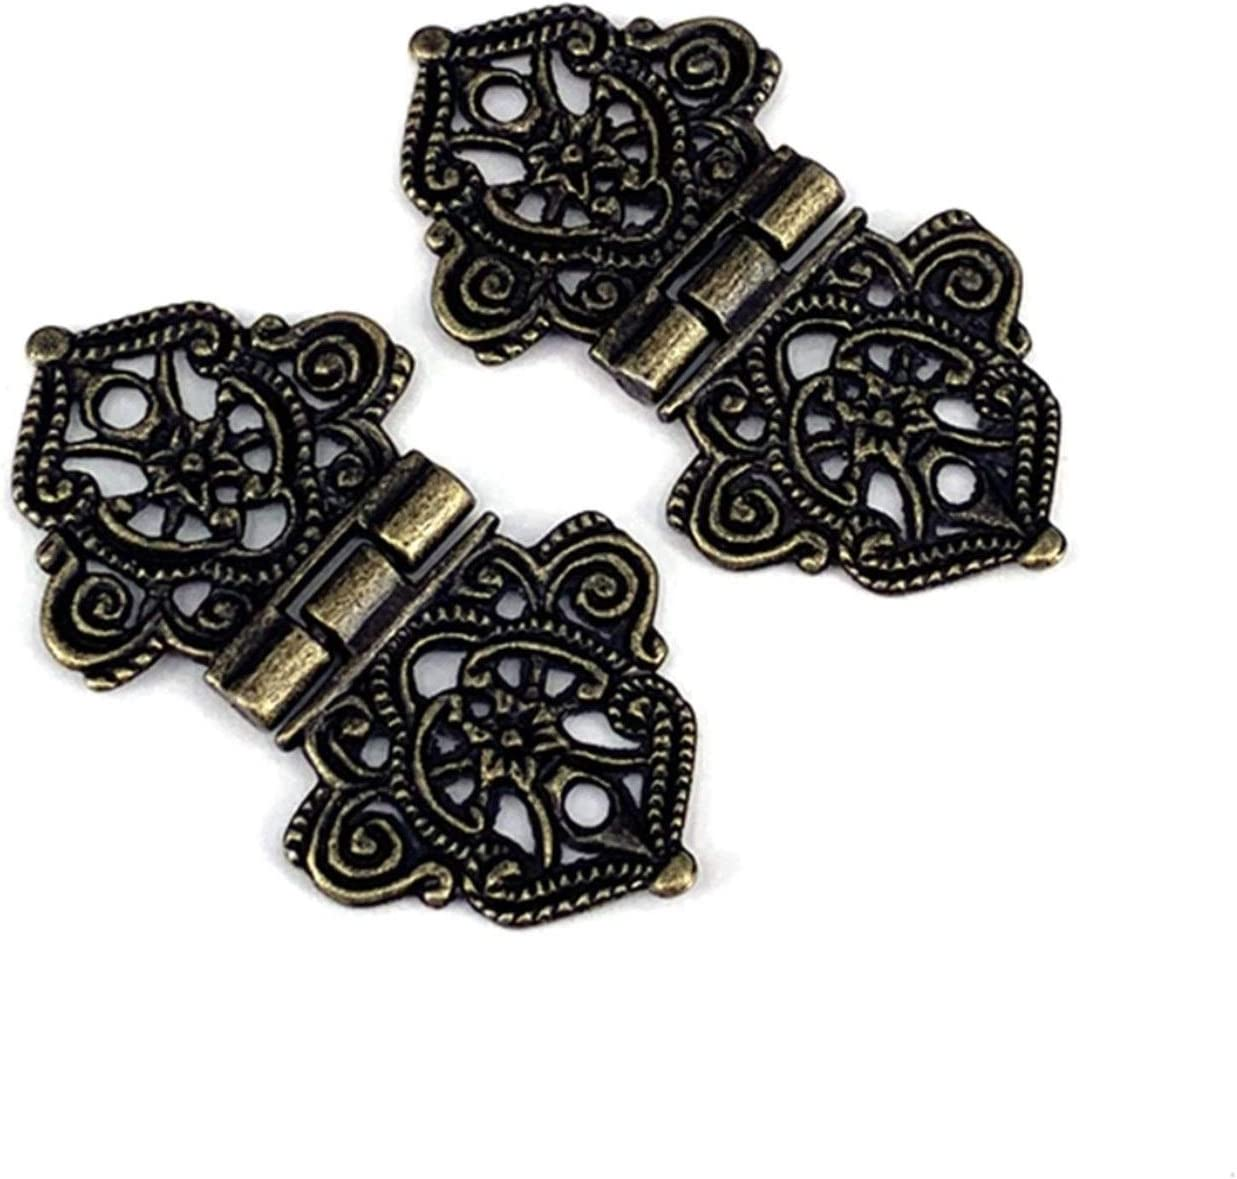 2Pcs 24x54mm Antique OFFer Lace Hinges Box Ha Jewelry Wooden Brand new Furniture